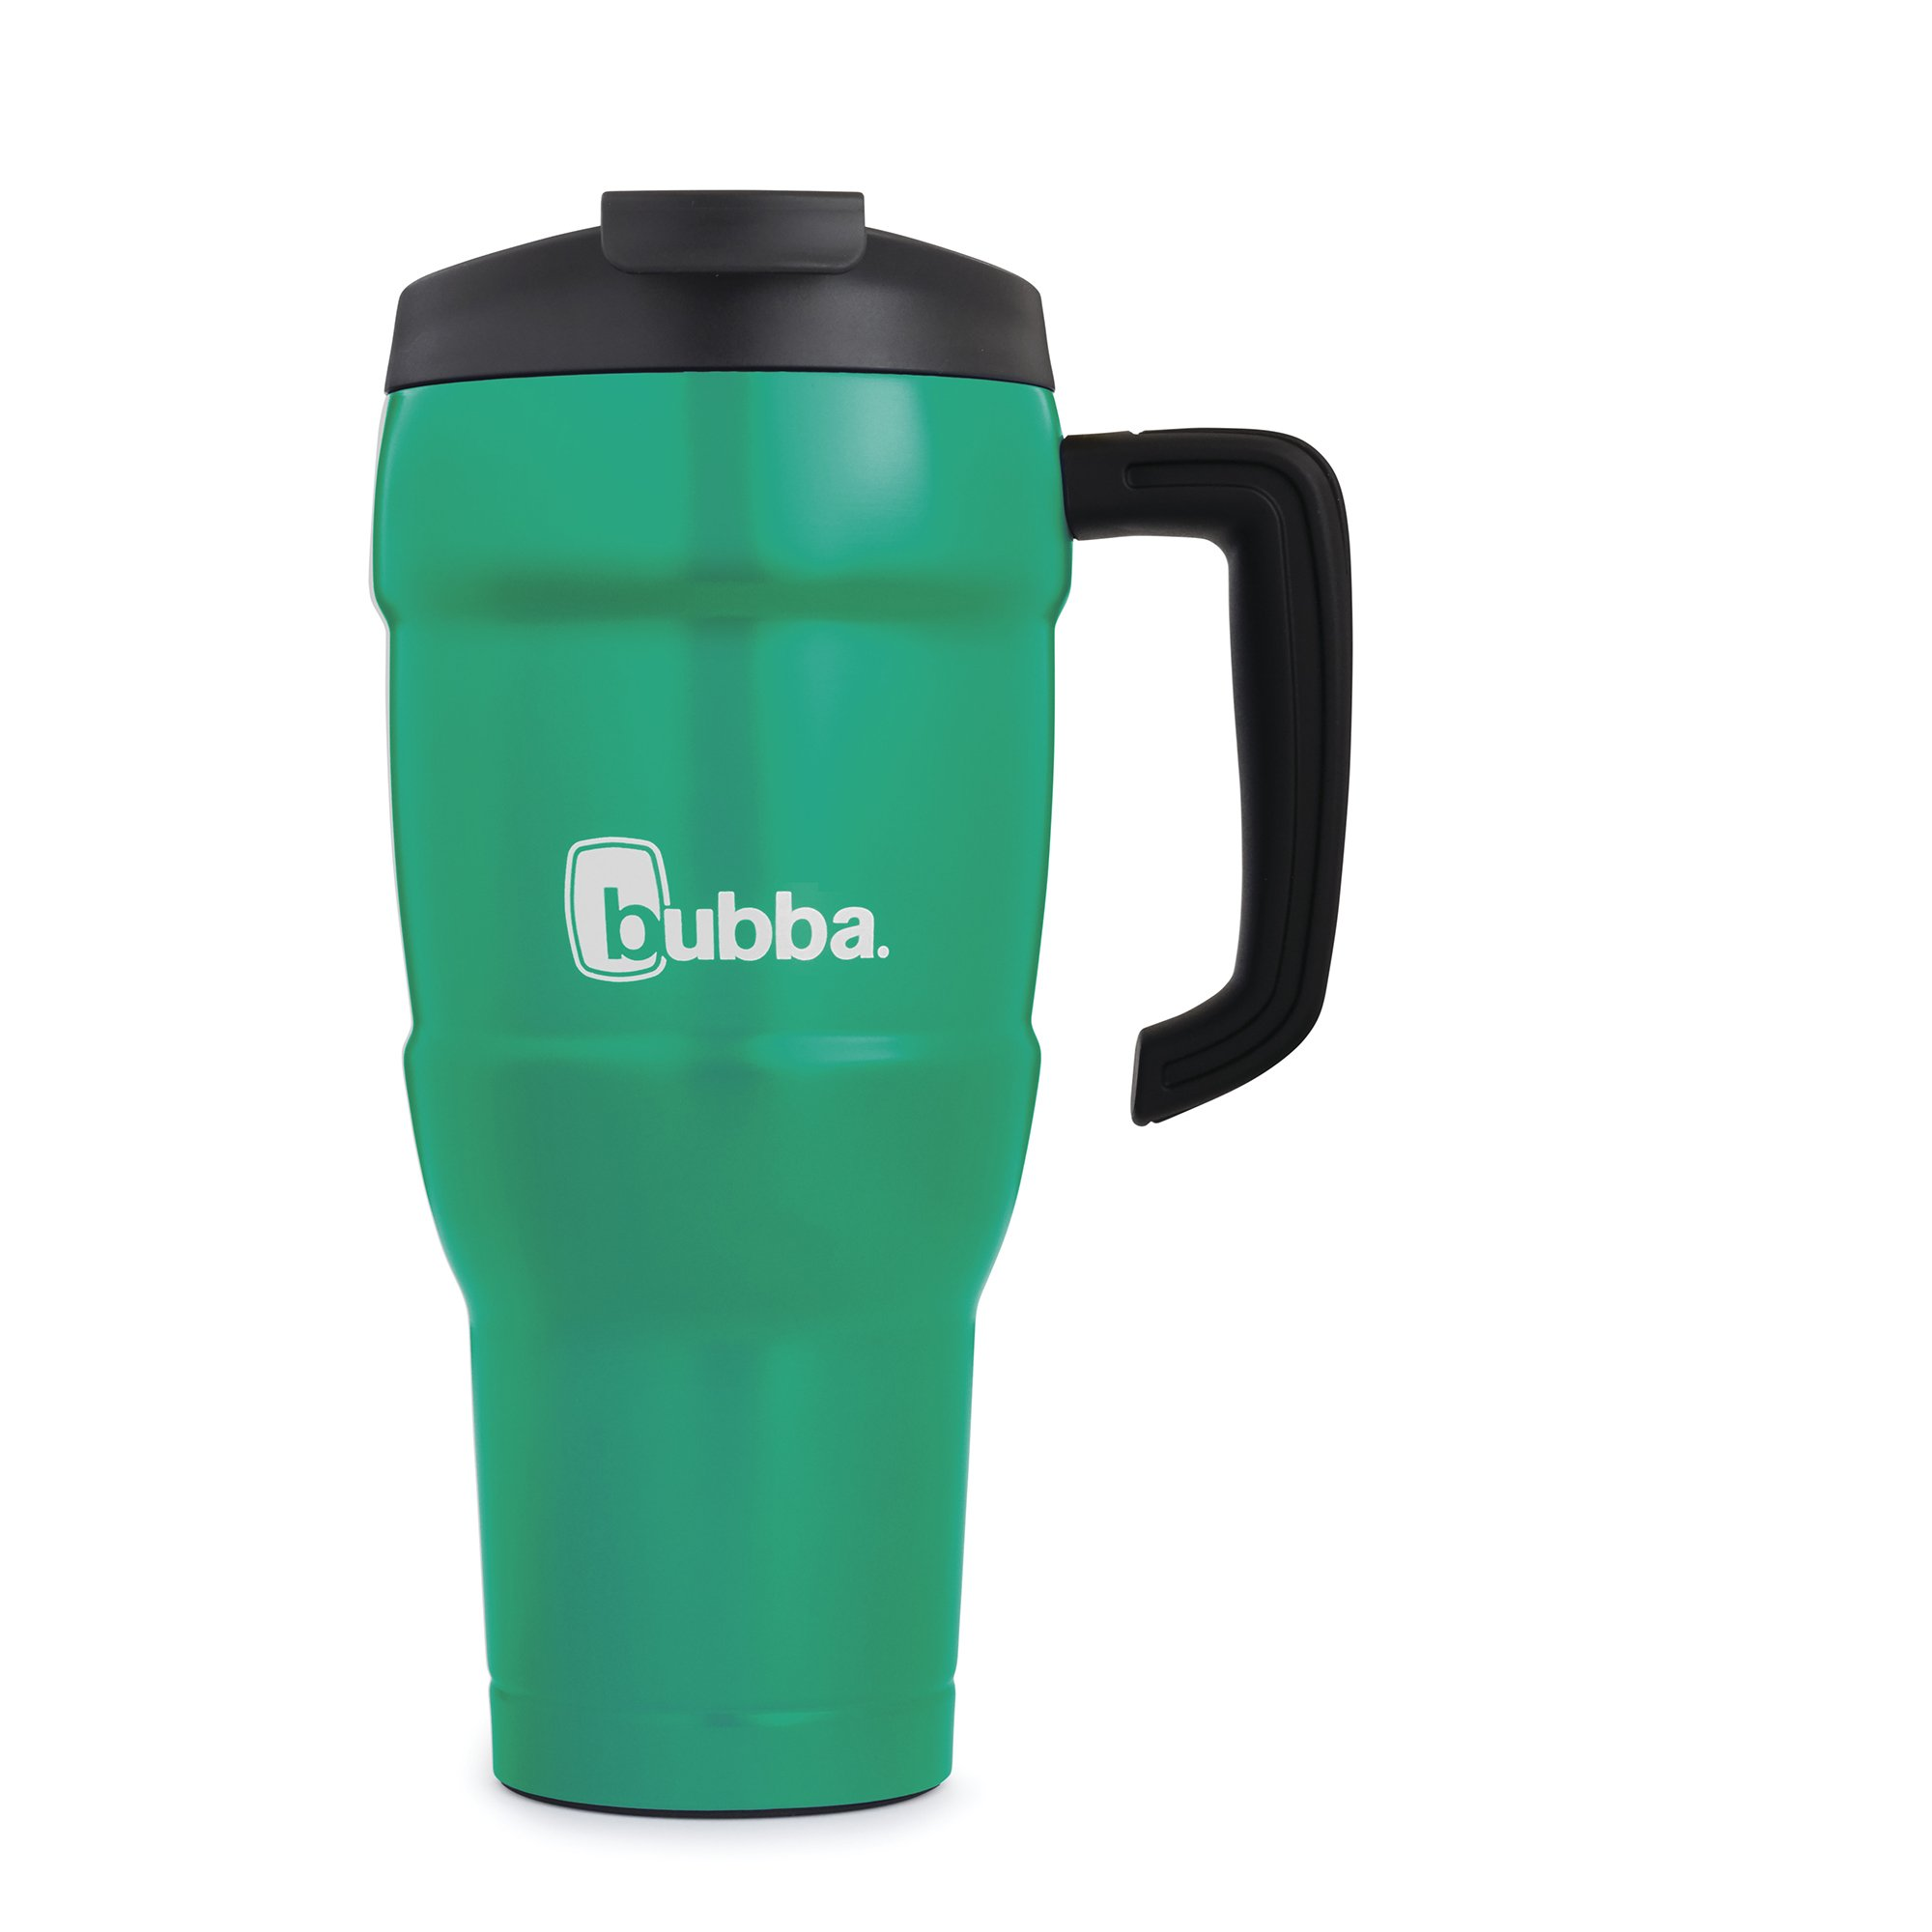 bubba 2044272 Hero XL Vacuum-Insulated Stainless Steel Travel Mug, 30 oz, Rock Candy by bubba